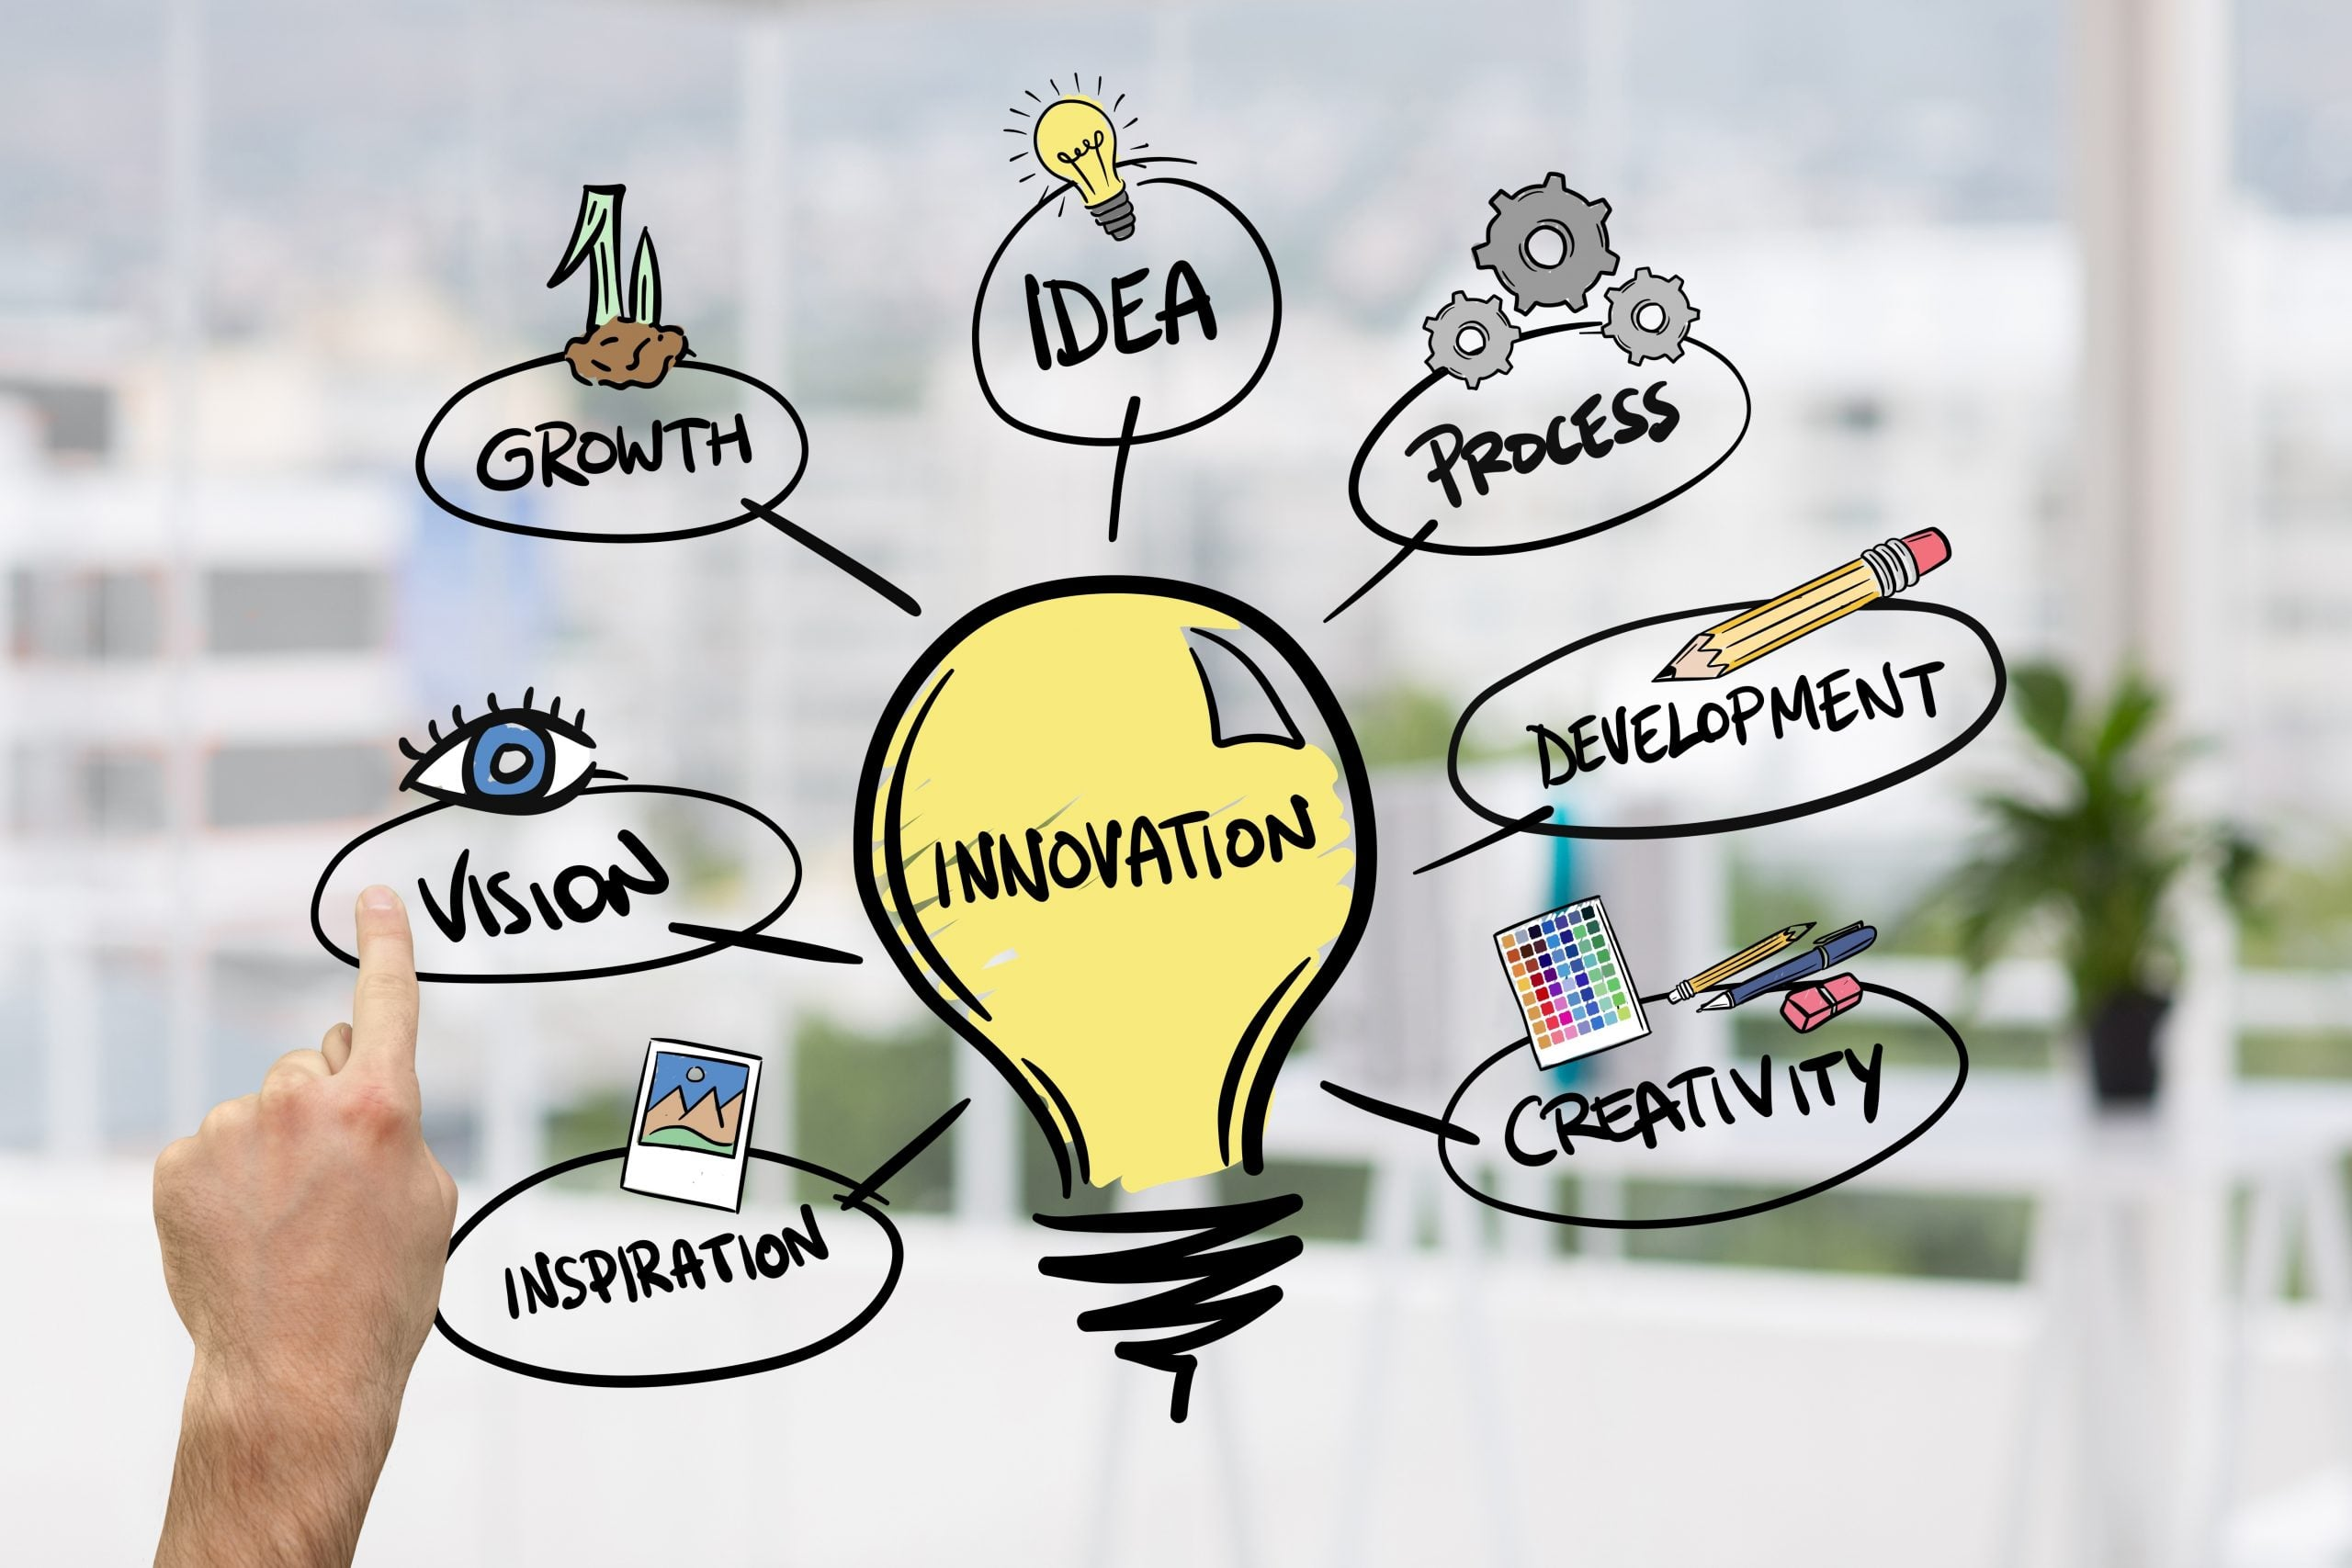 What is Risk Taking and Innovation?